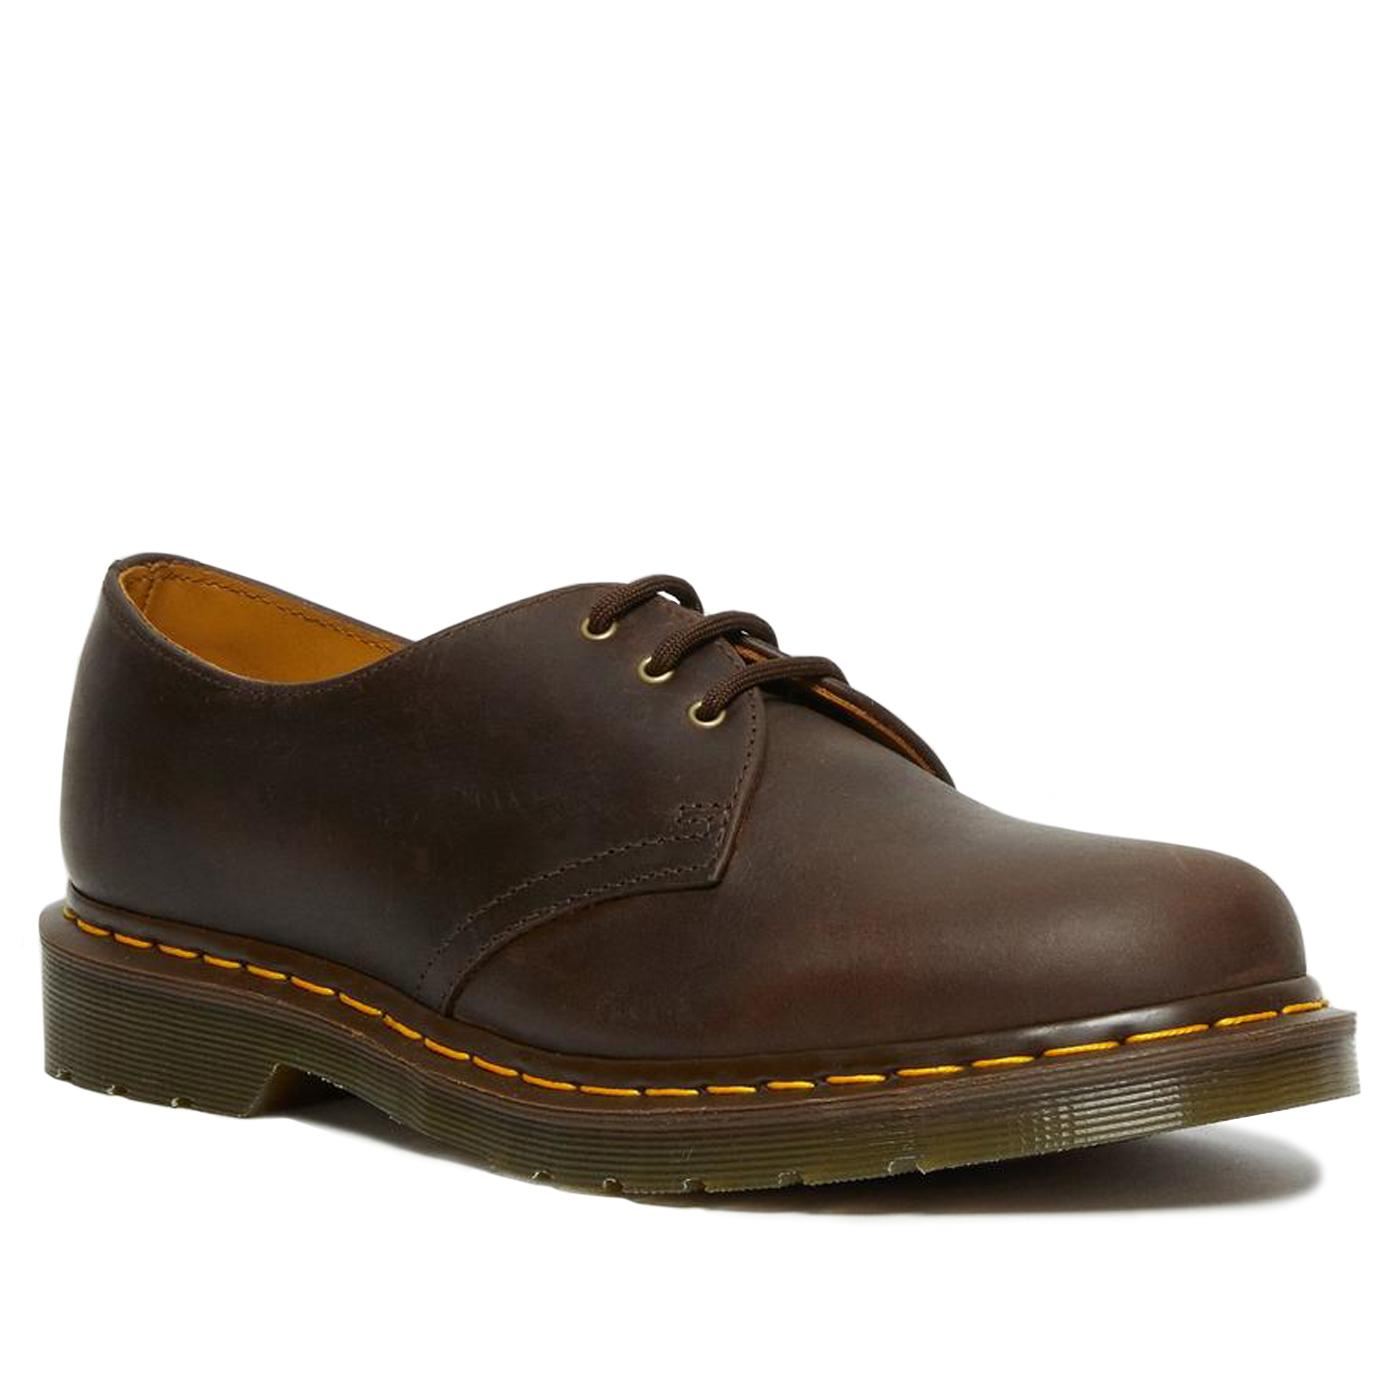 1461 Gaucho DR MARTENS Leather Oxford Shoes BROWN